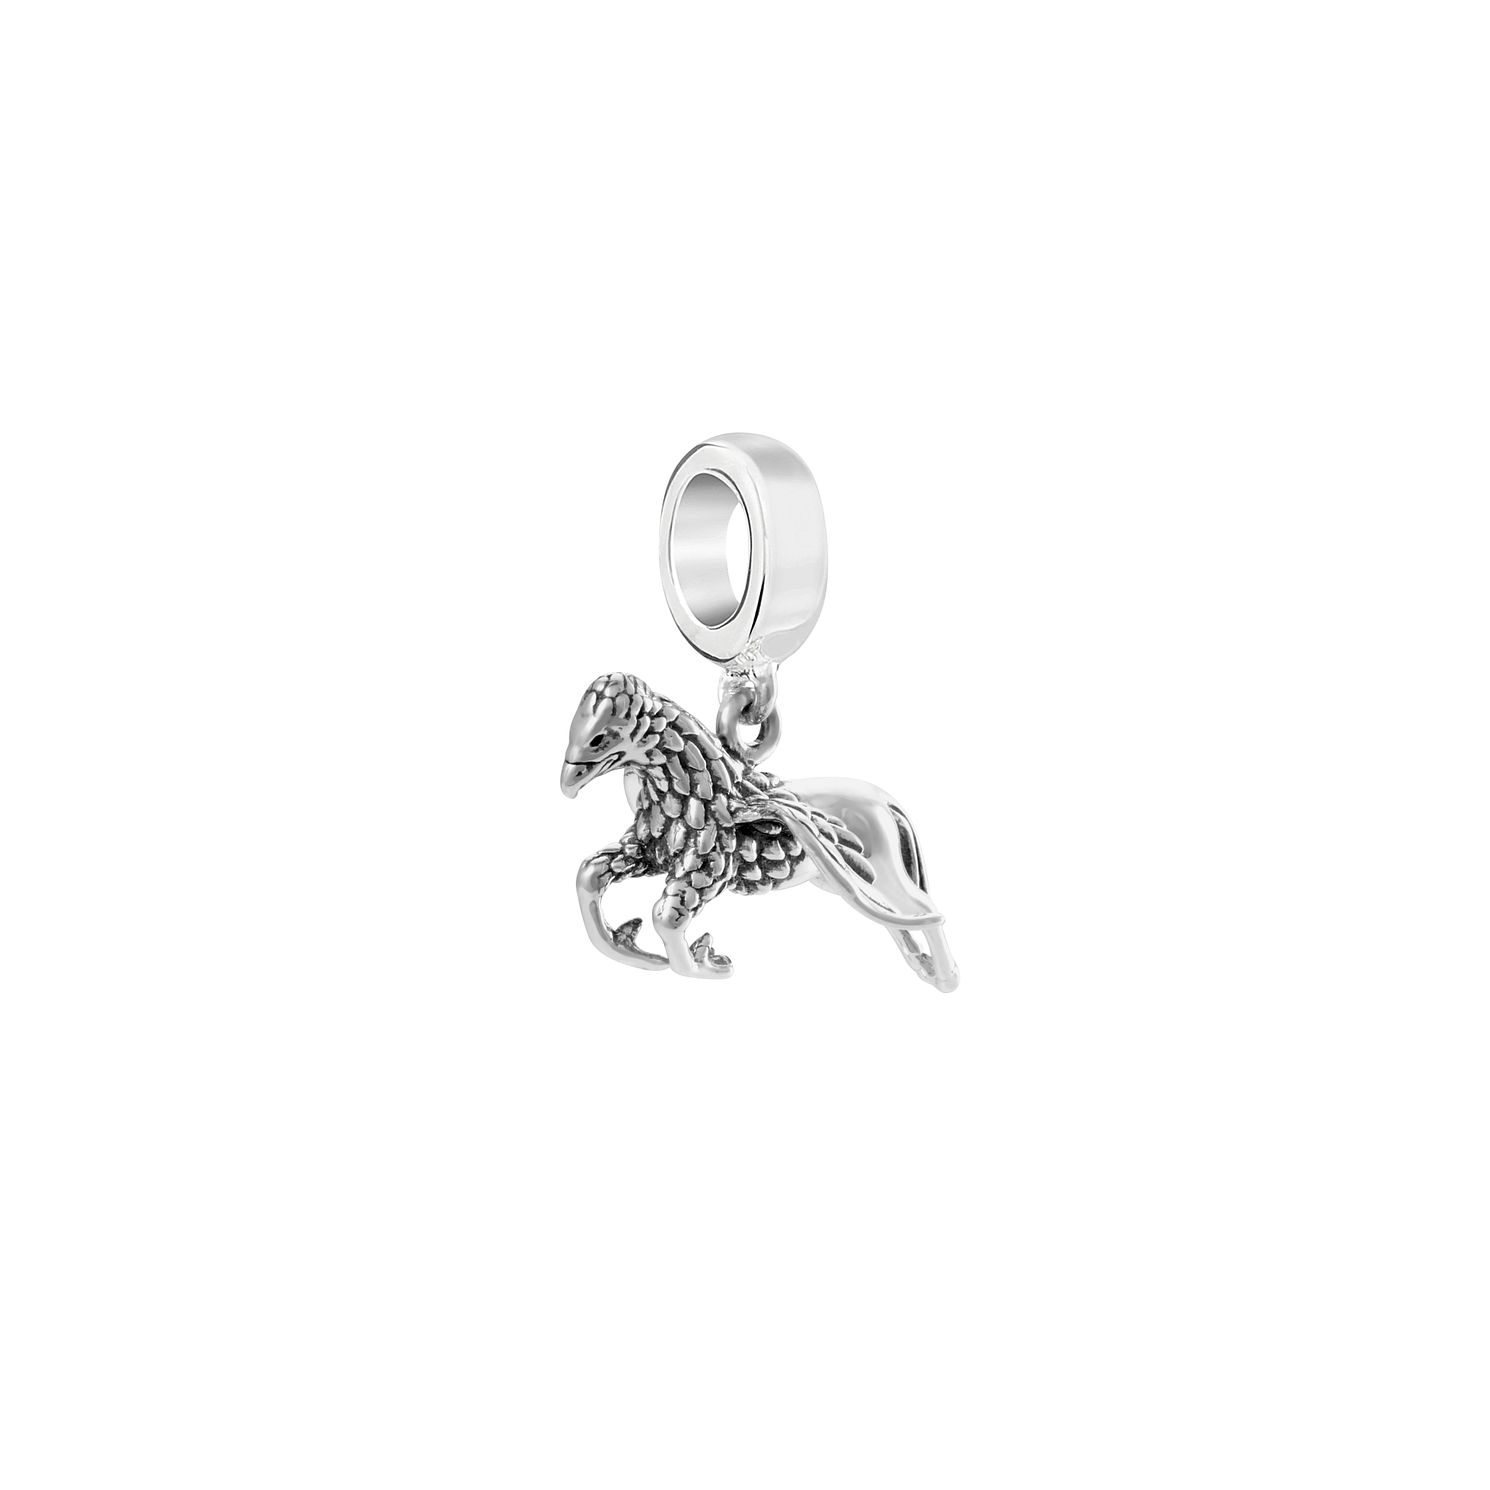 Chamilia Harry Potter Buckbeak the Hippogriff Charm - Product number 5229871